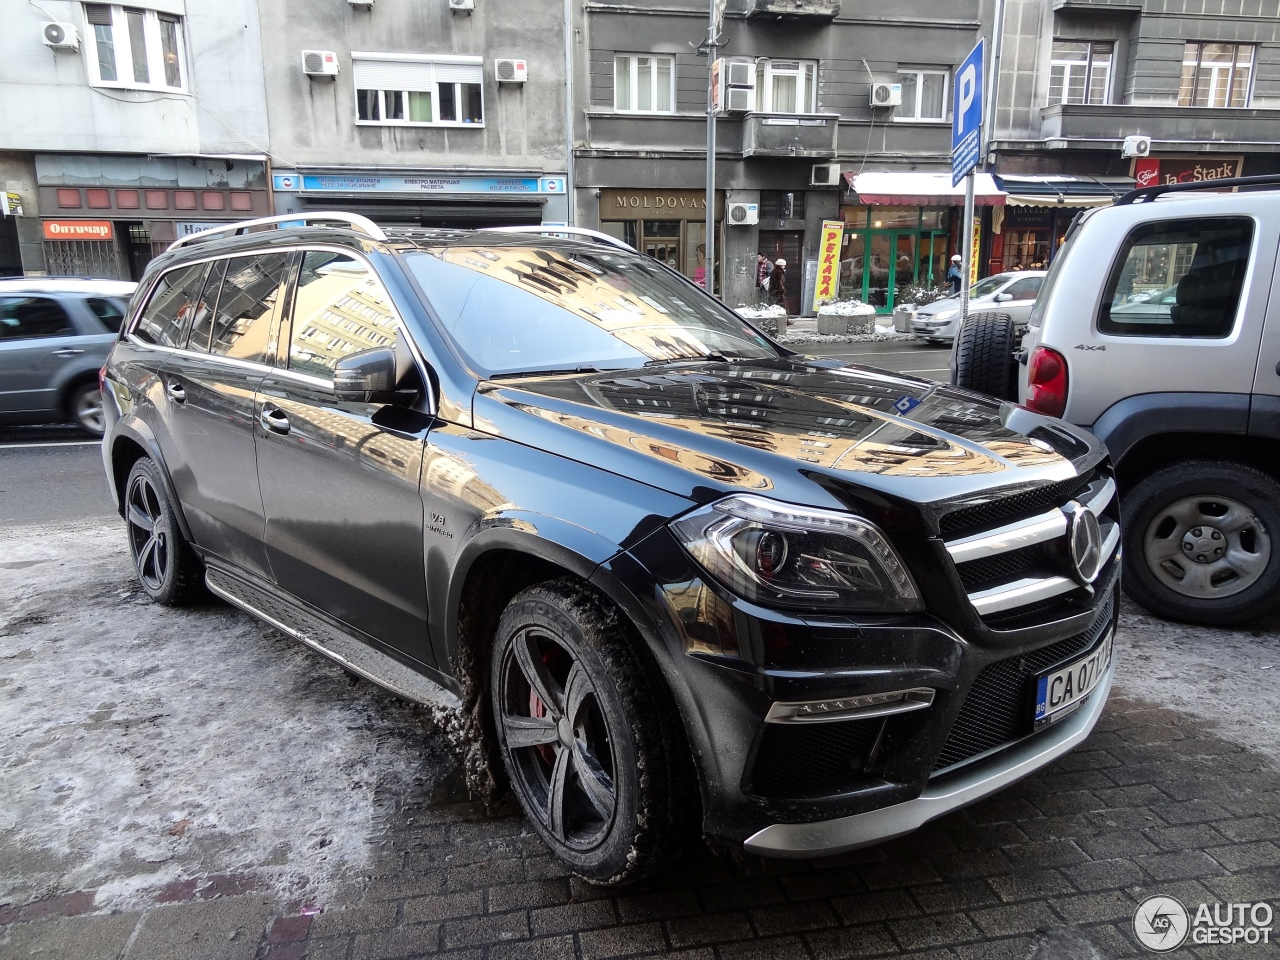 Mercedes benz gl 63 amg x166 5 january 2015 autogespot for Mercedes benz gl 63 amg